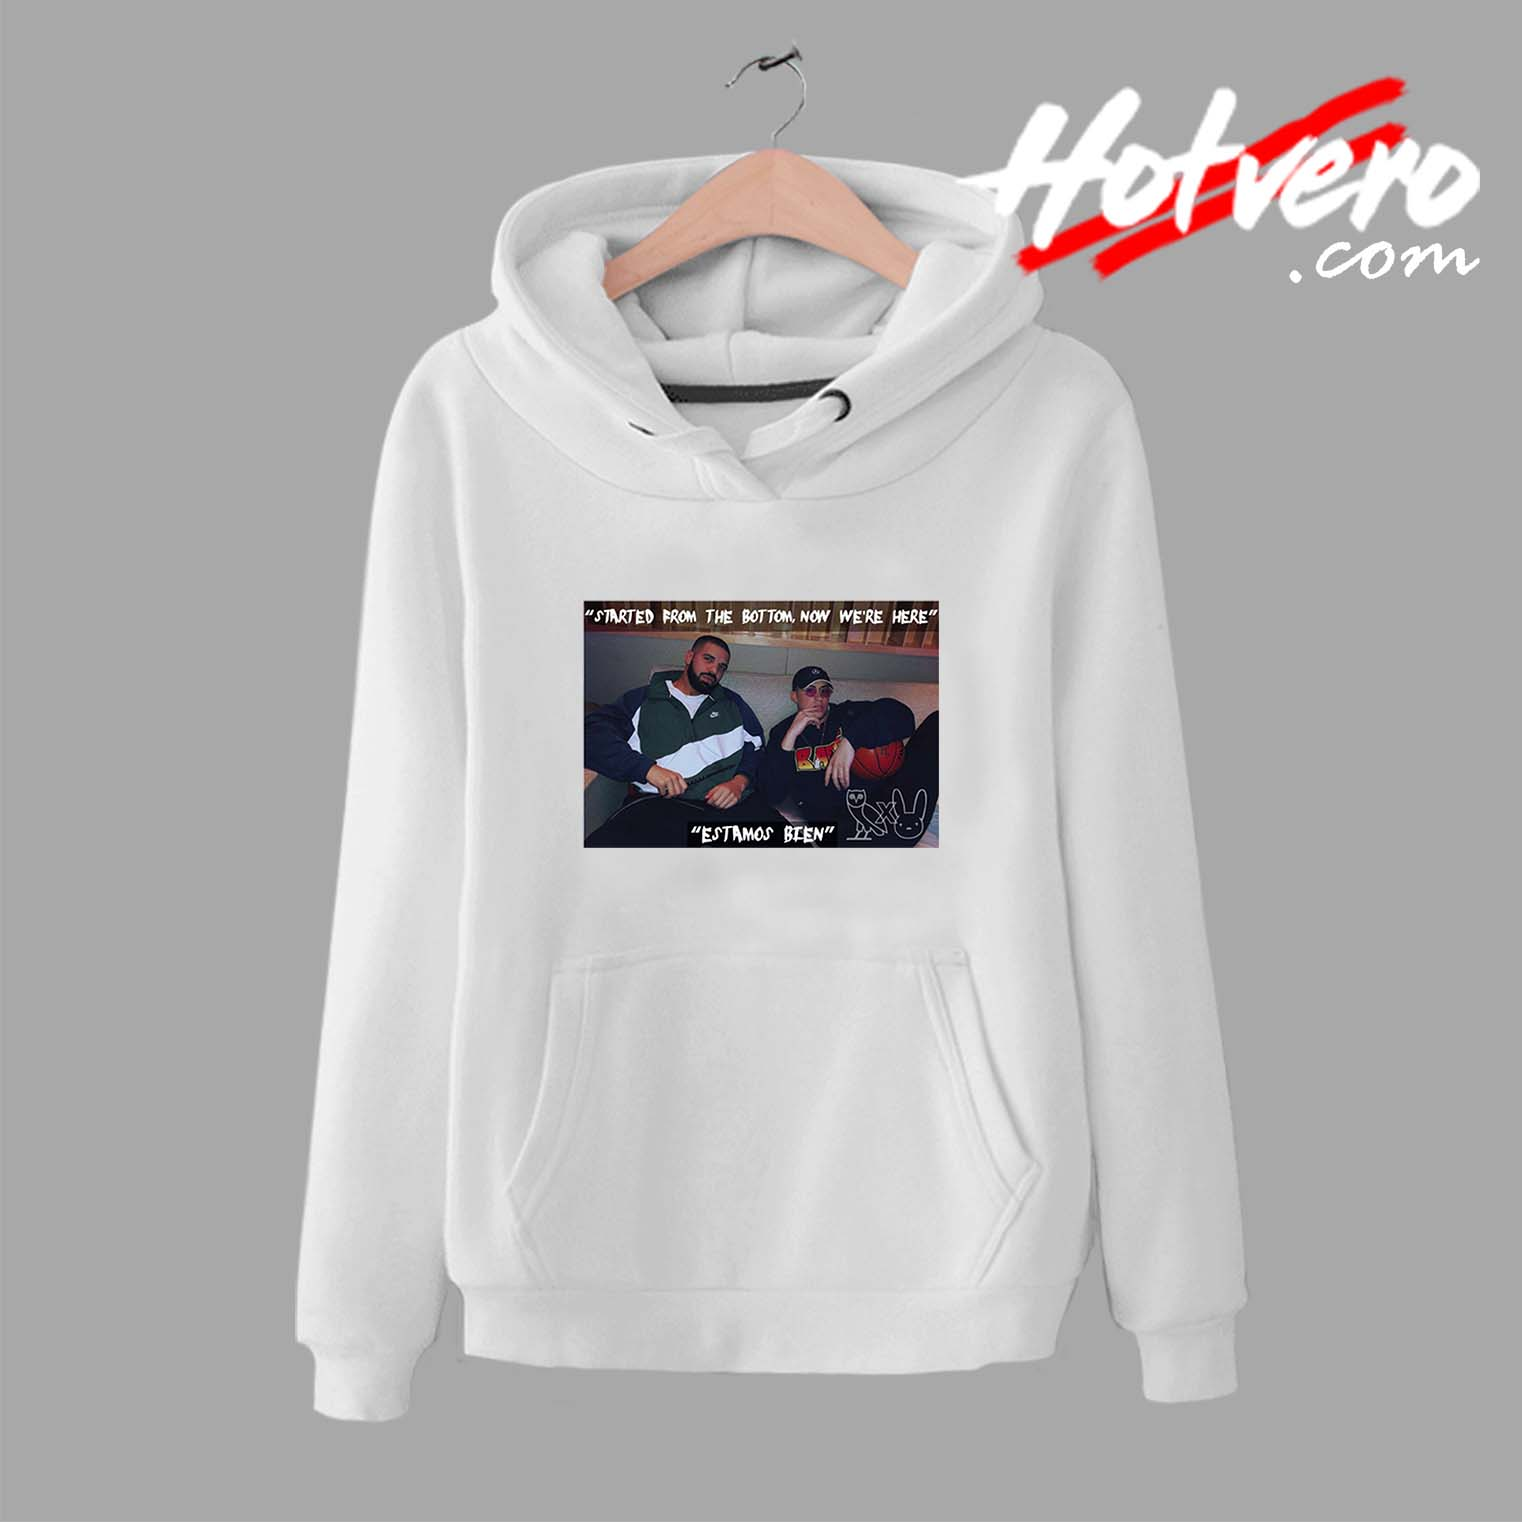 e99ba158fd Drake X Bad Bunny Hip Hop Collabs Unisex Hoodie - Streetwear by Hotvero